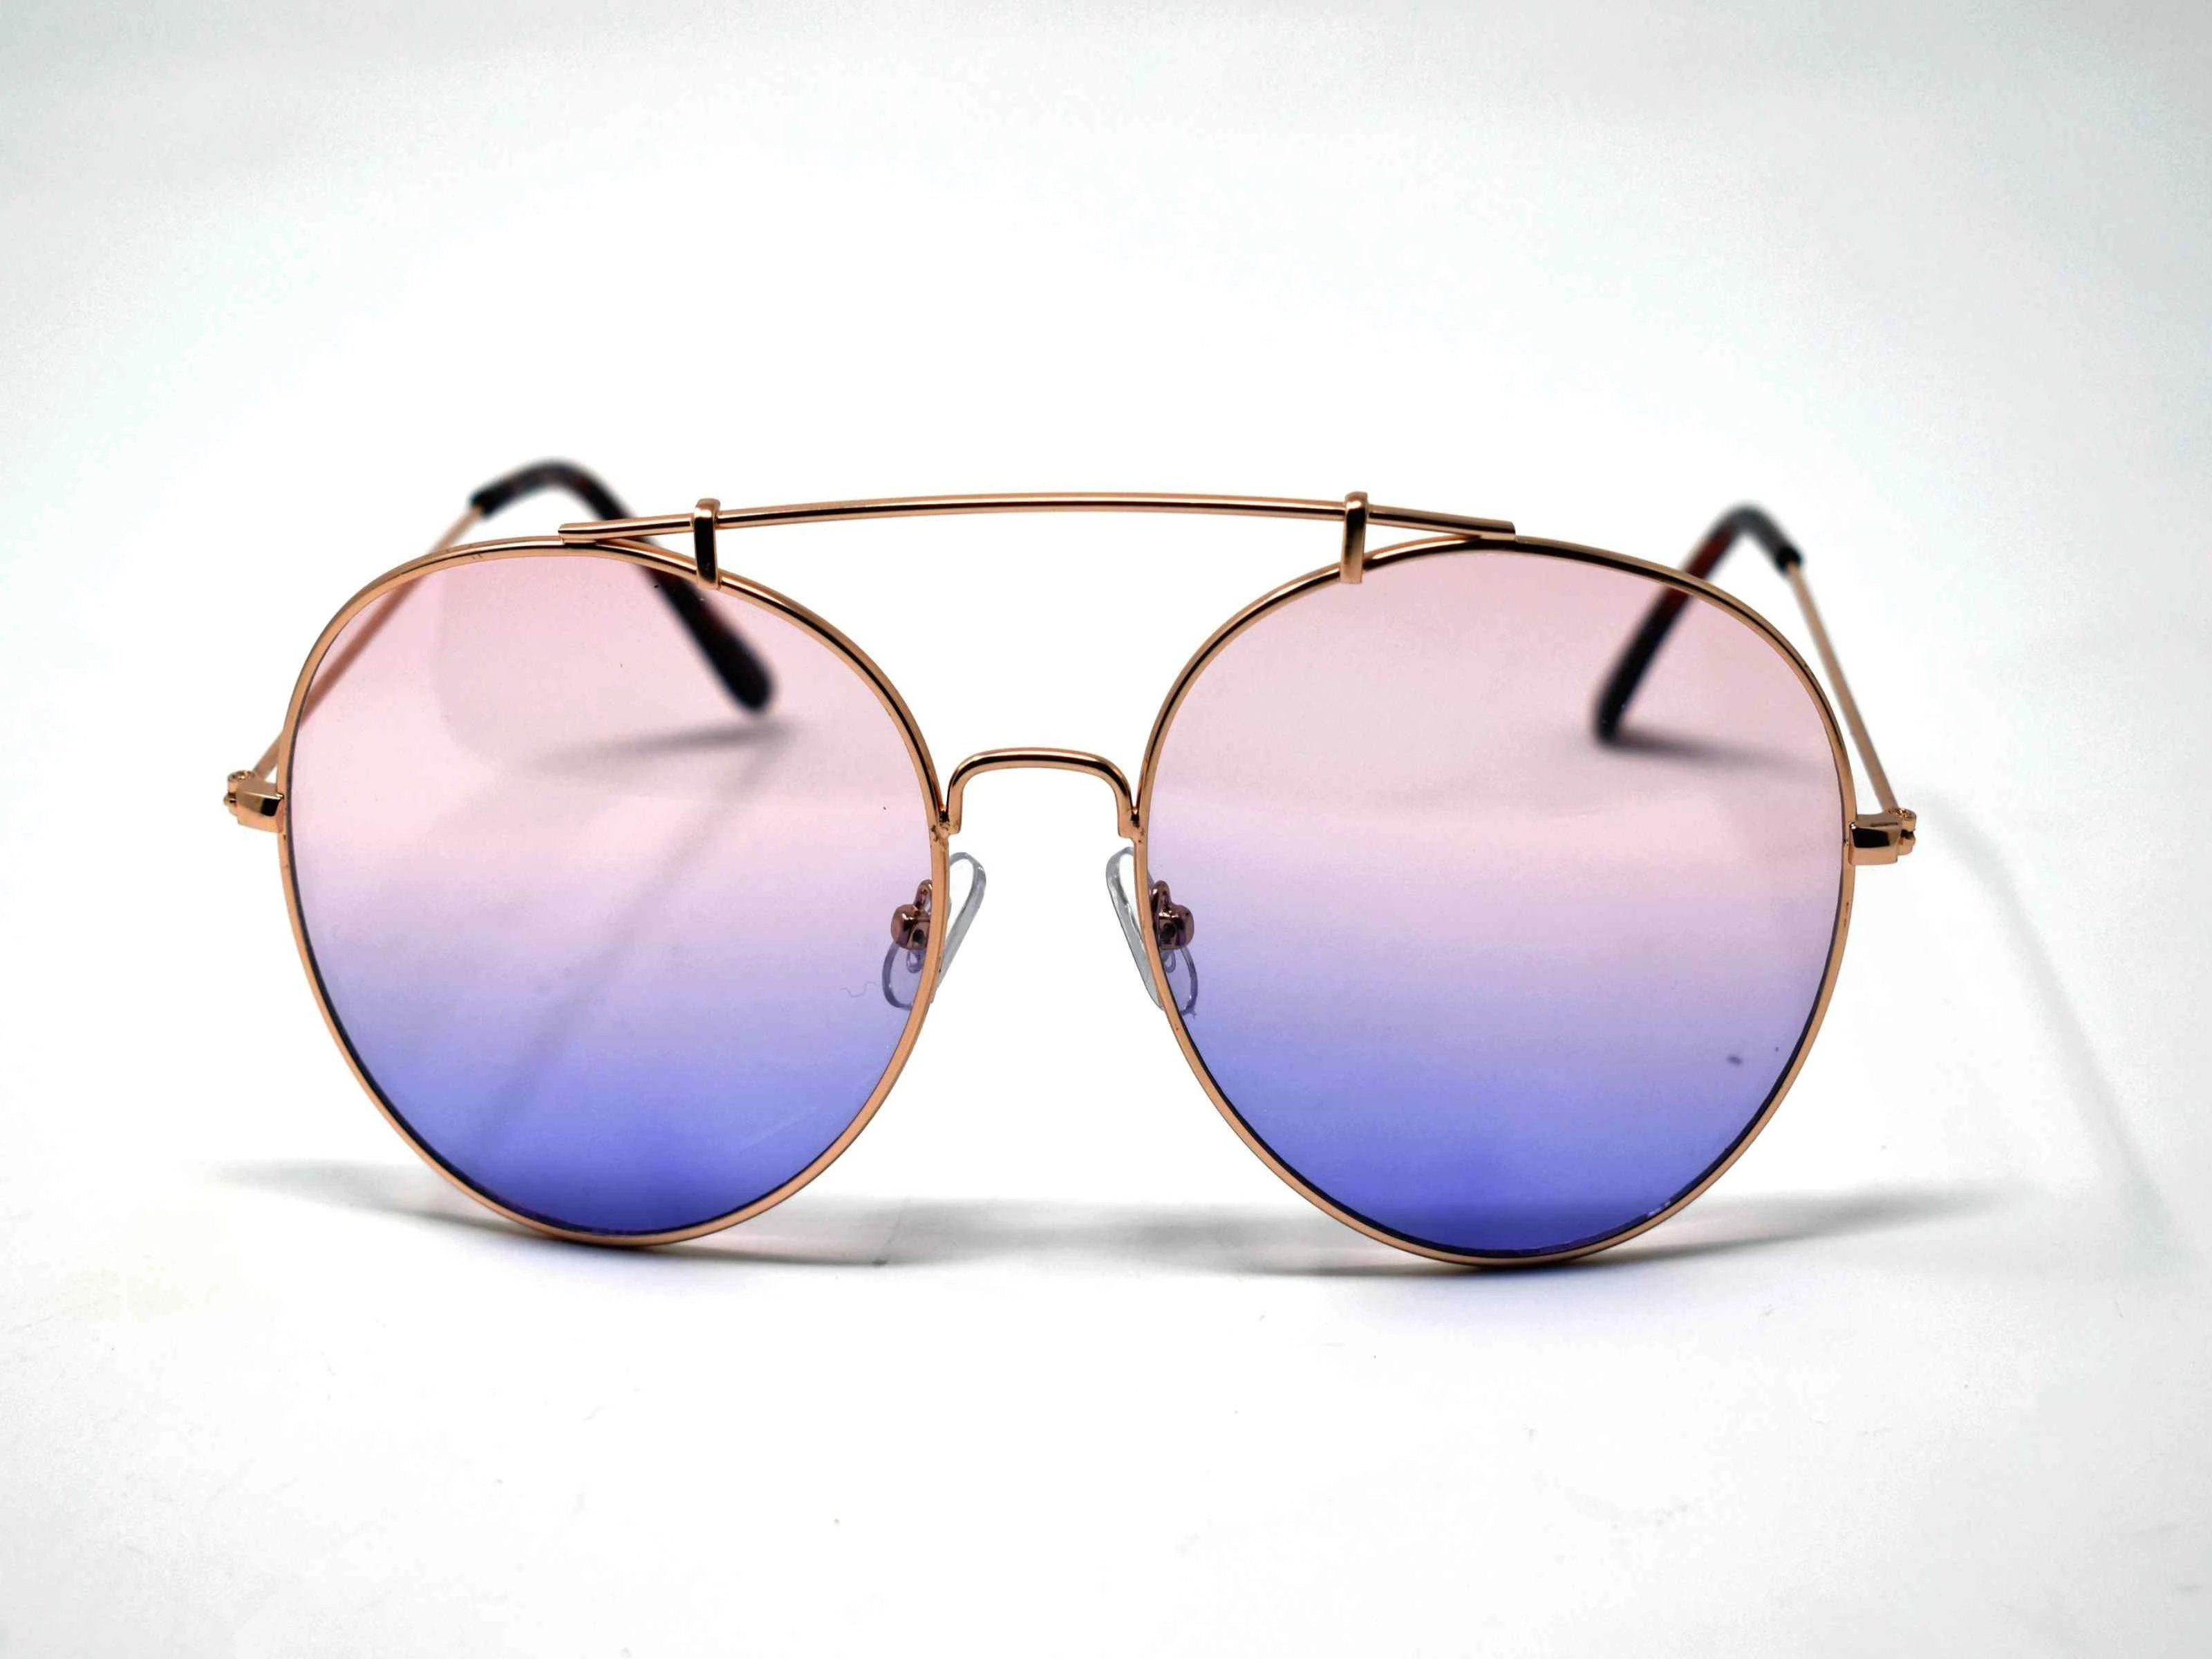 Va Va Voom will be consistently heard in these Vervain gold frame aviator Pink and Blue ombre lens sunglasses.